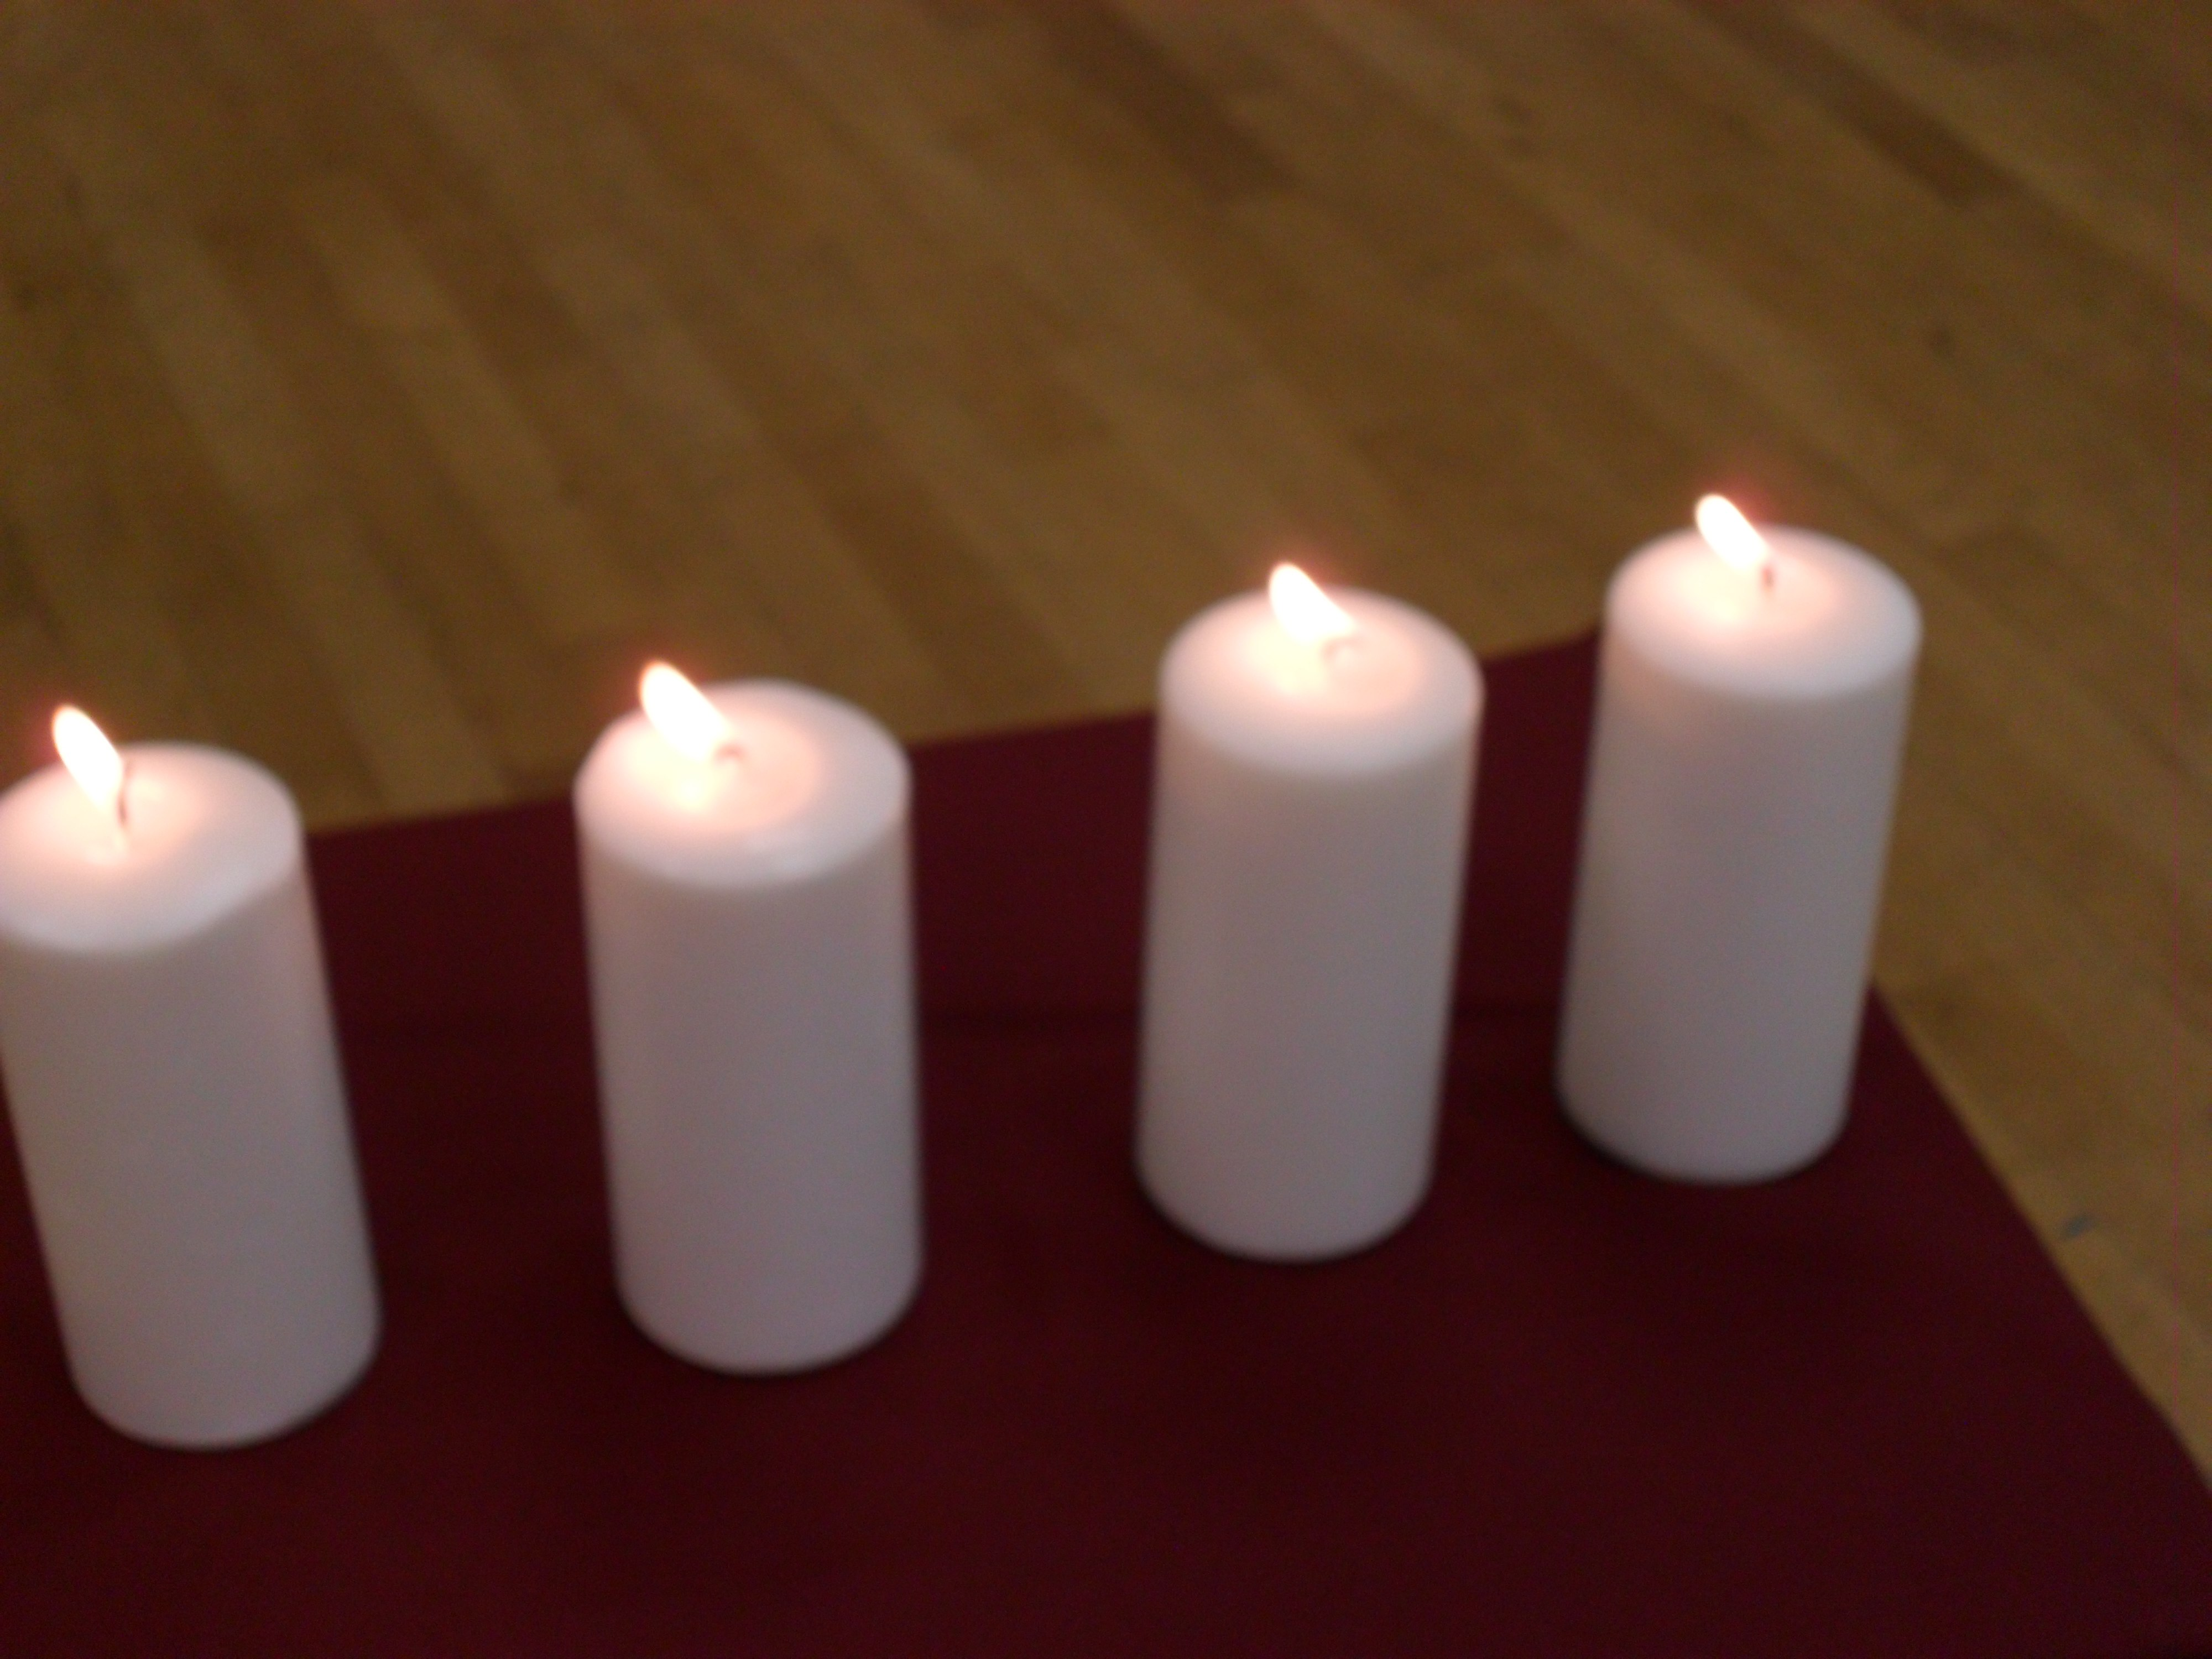 & Lighting the Darkness of Grief - Our Life Celebrations